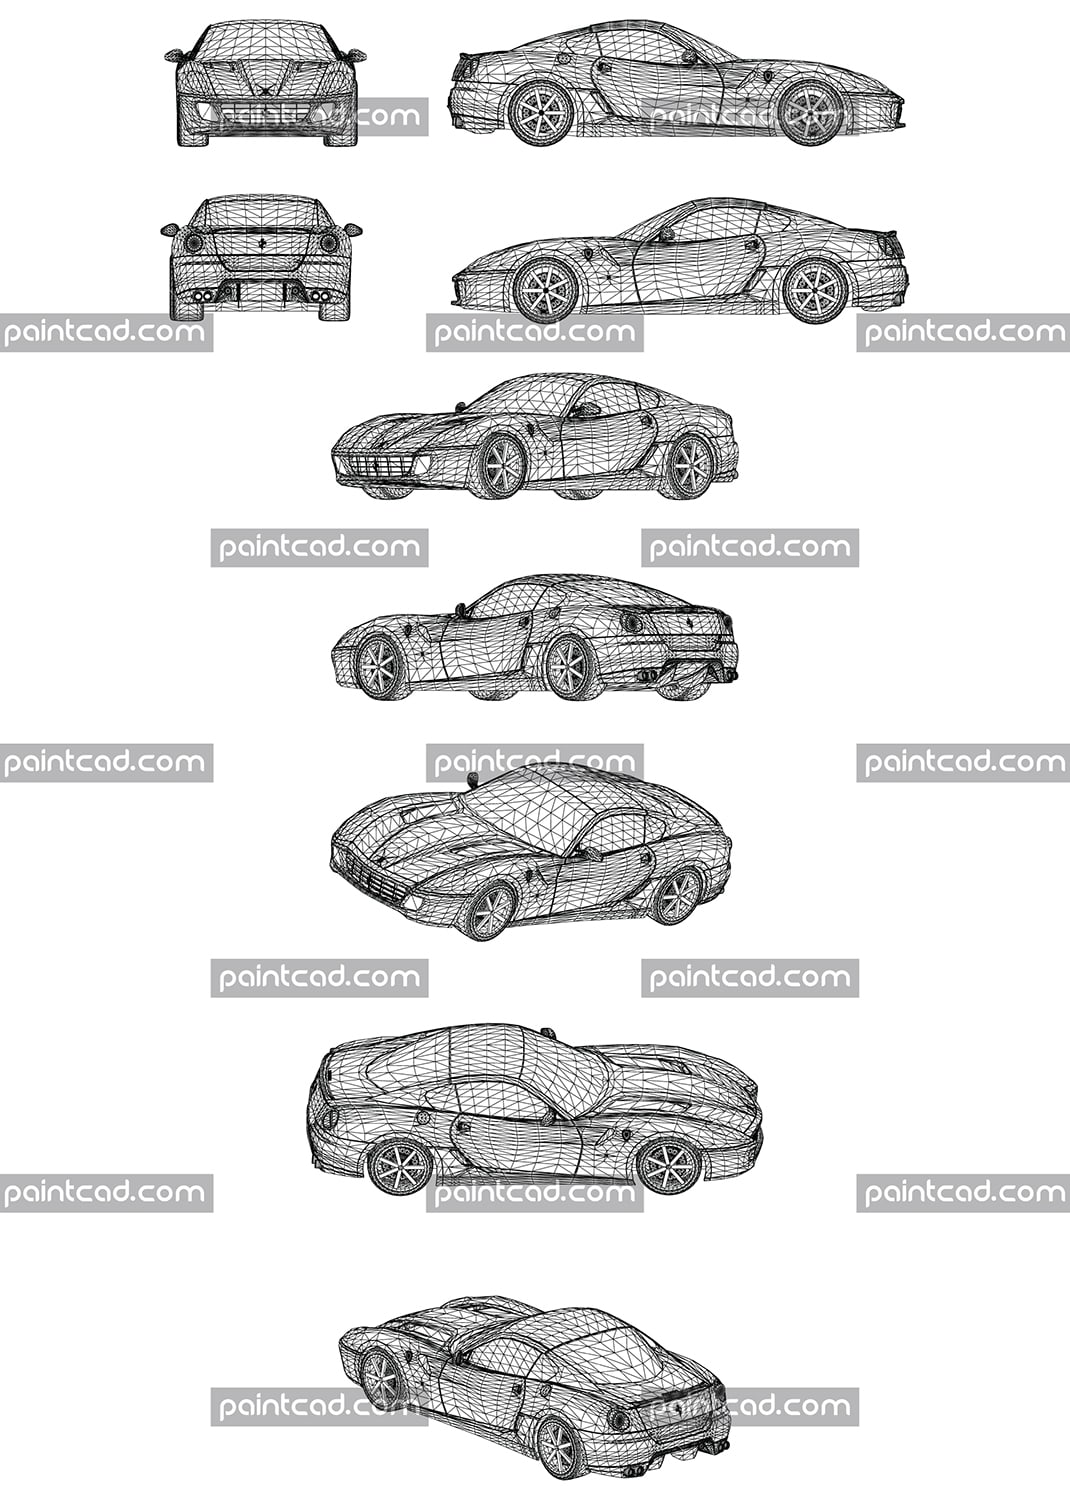 Wire model of mega luxury sports car, manufactured in Italy. The vehicle is one of the most desirable models for possession and driving. It is synonymous with prosperity, class, excellently financial position, speed and beauty. Front, rear, side and axonometric view.